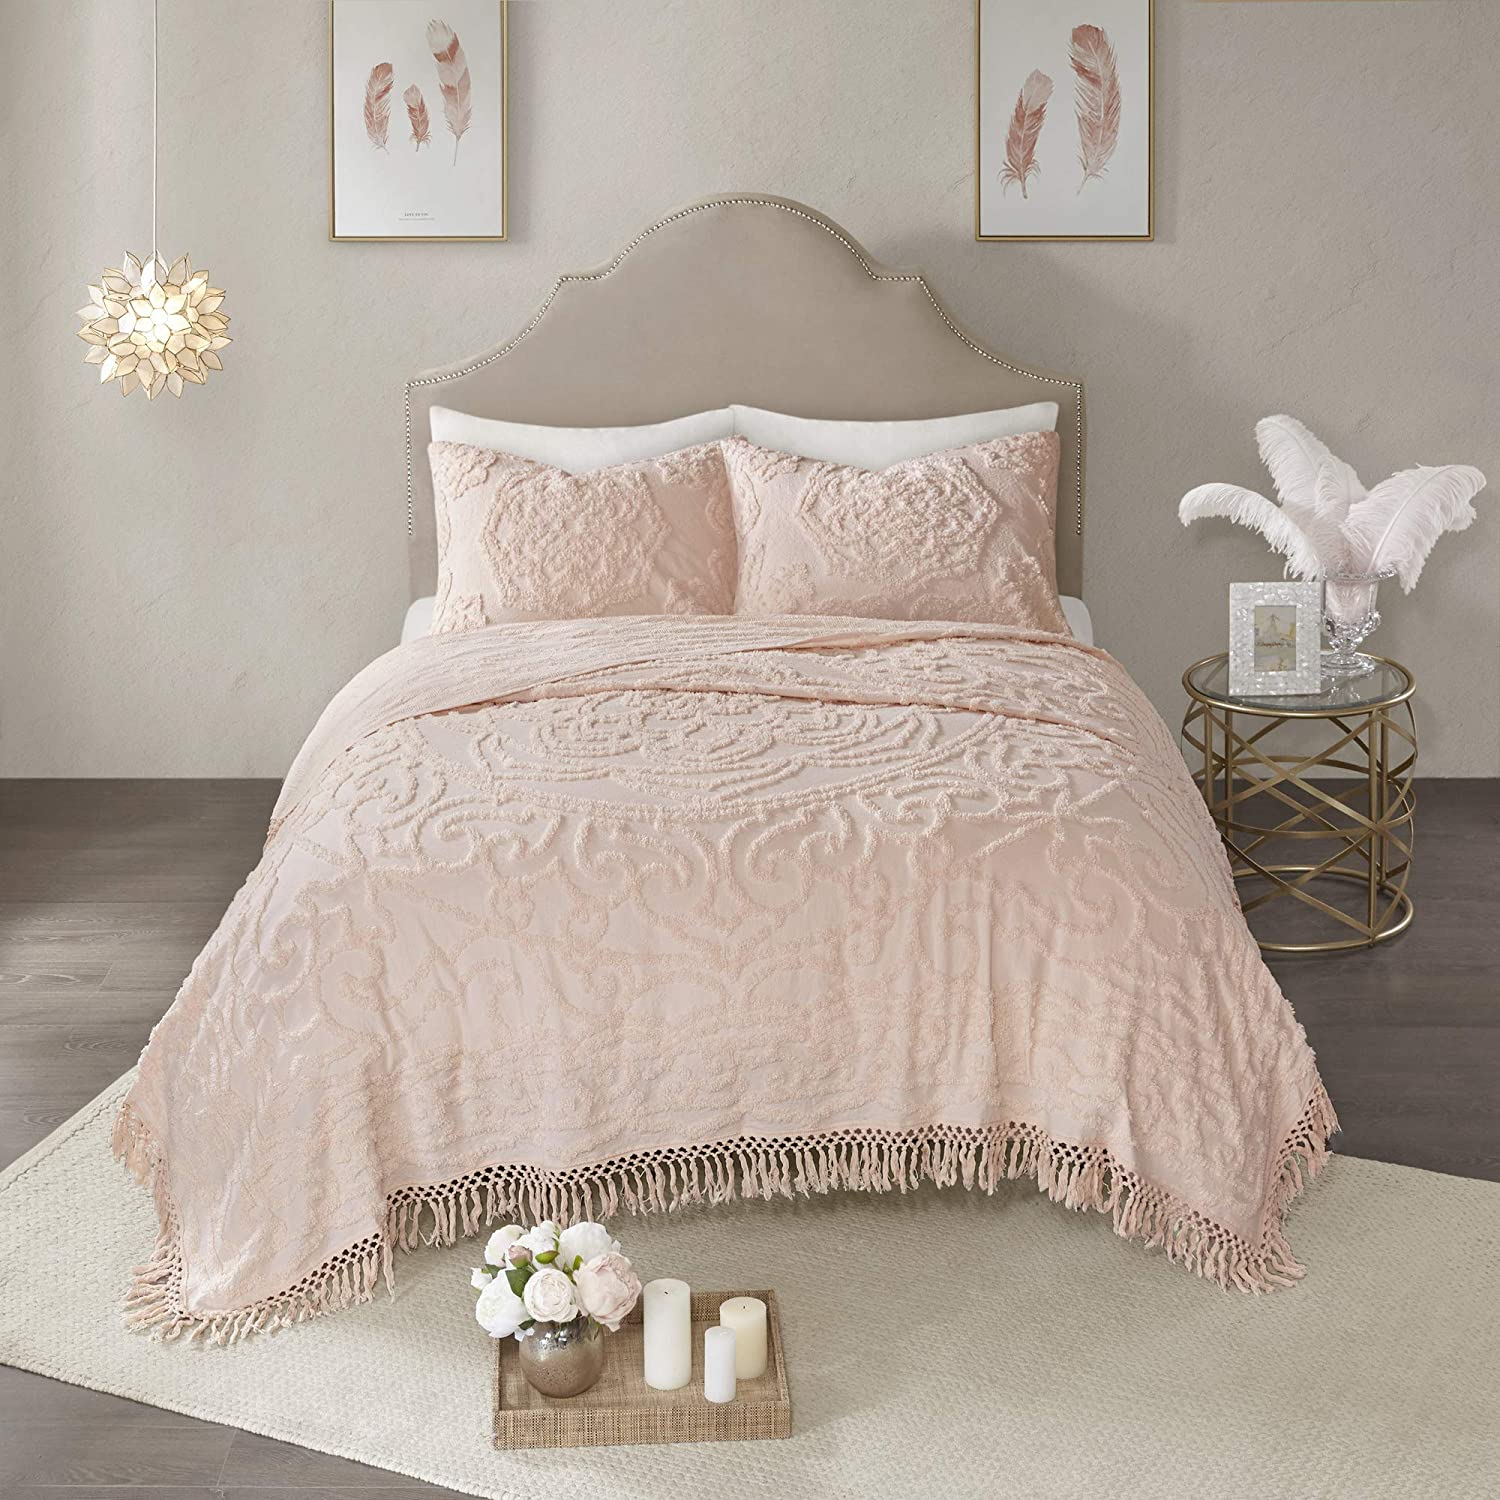 Madison Park Laetitia Chenille Tufted 100% Cotton Quilt Shabby Chic Cozy All Season Bedspread Bed Set with Matching Shams, Twin/Twin XL